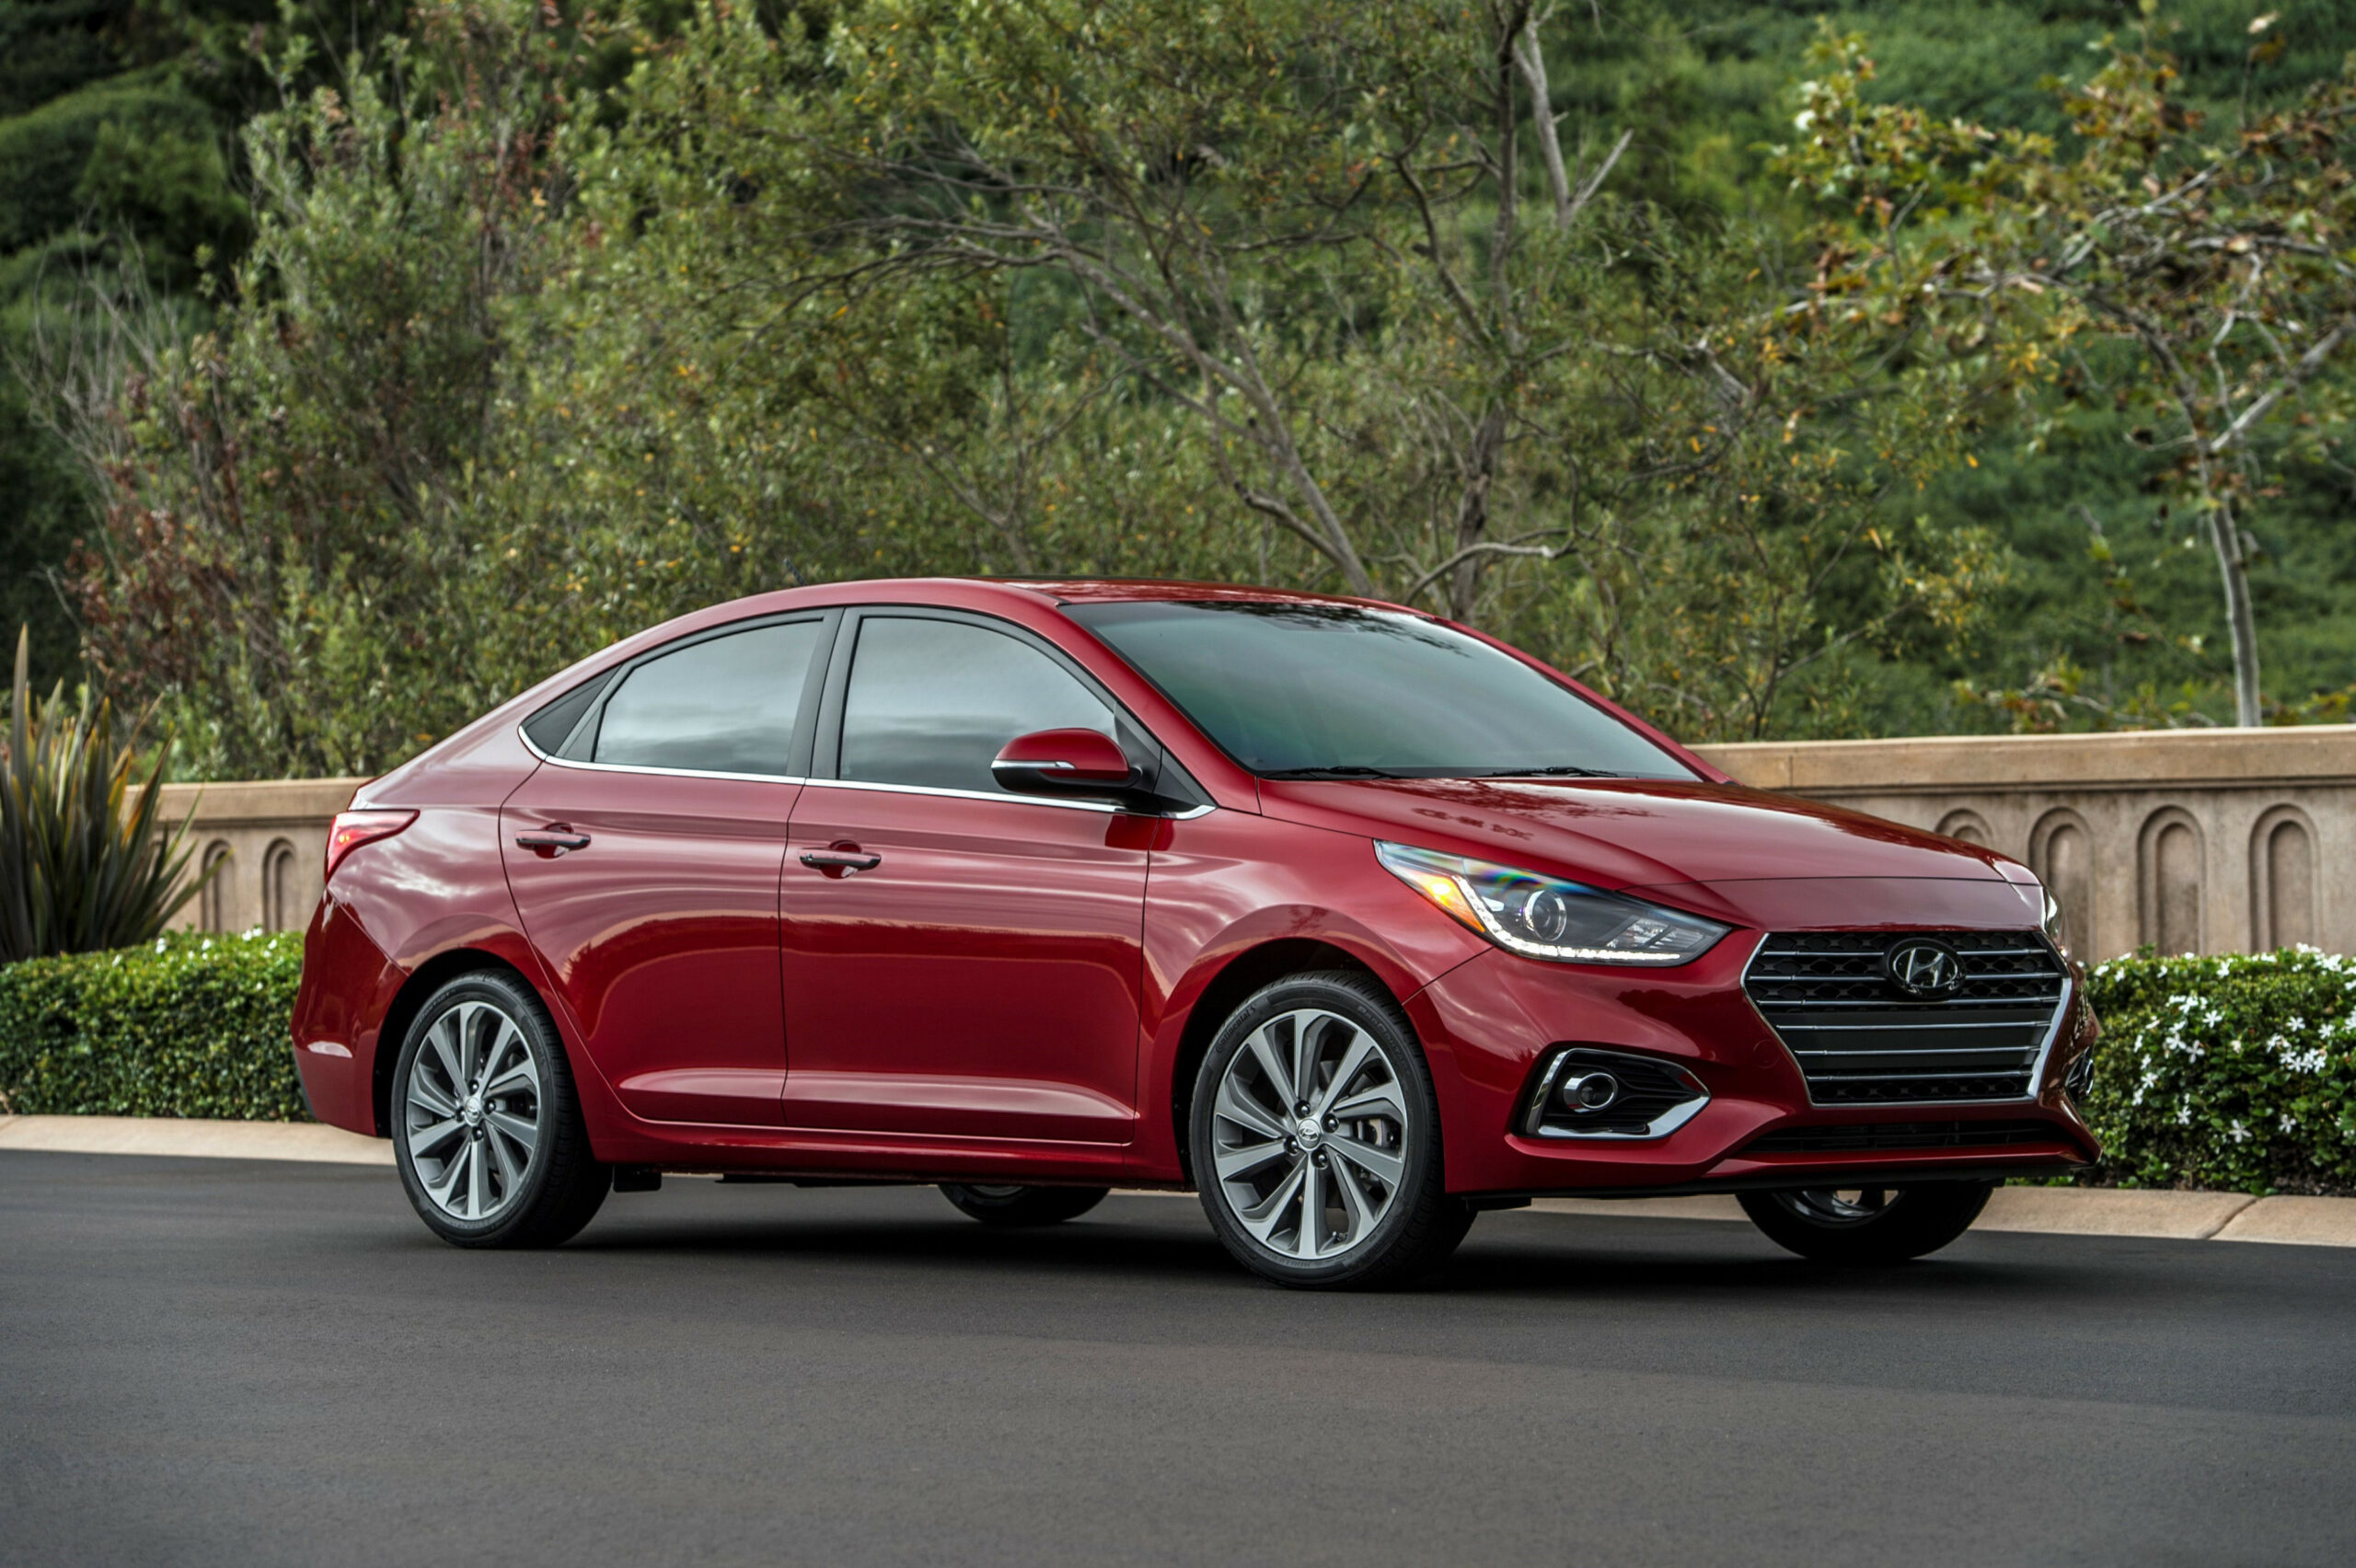 6 Hyundai Accent Review, Pricing, and Specs - 2020 hyundai accent mpg